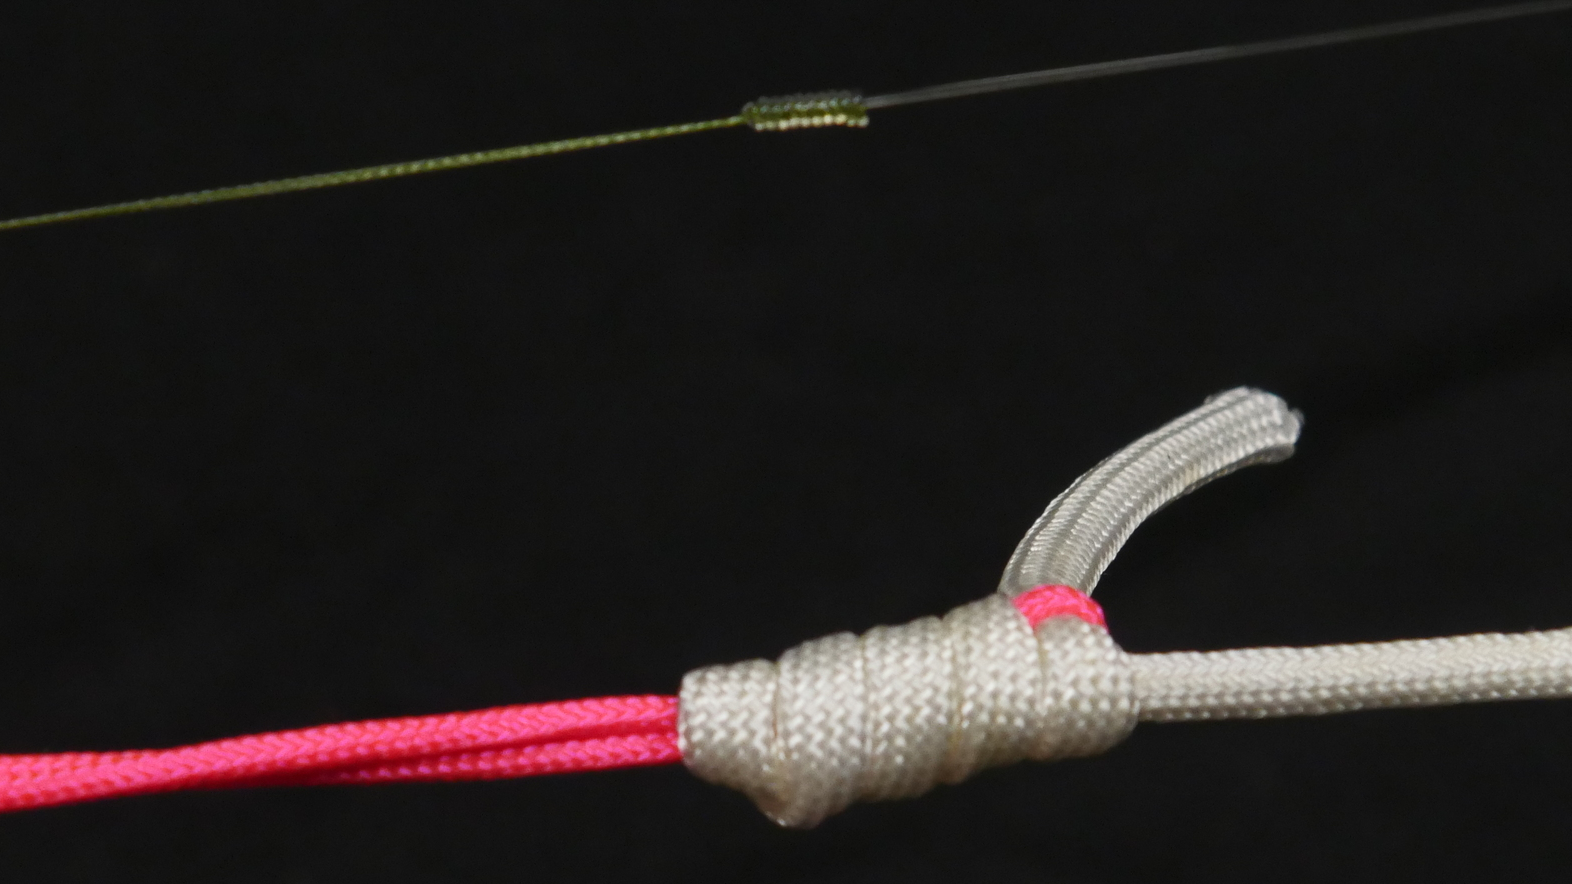 The Aussie Quickie Knot for braid to fluorocarbon shown above with braid and fluorocarbon and below with heavy cord